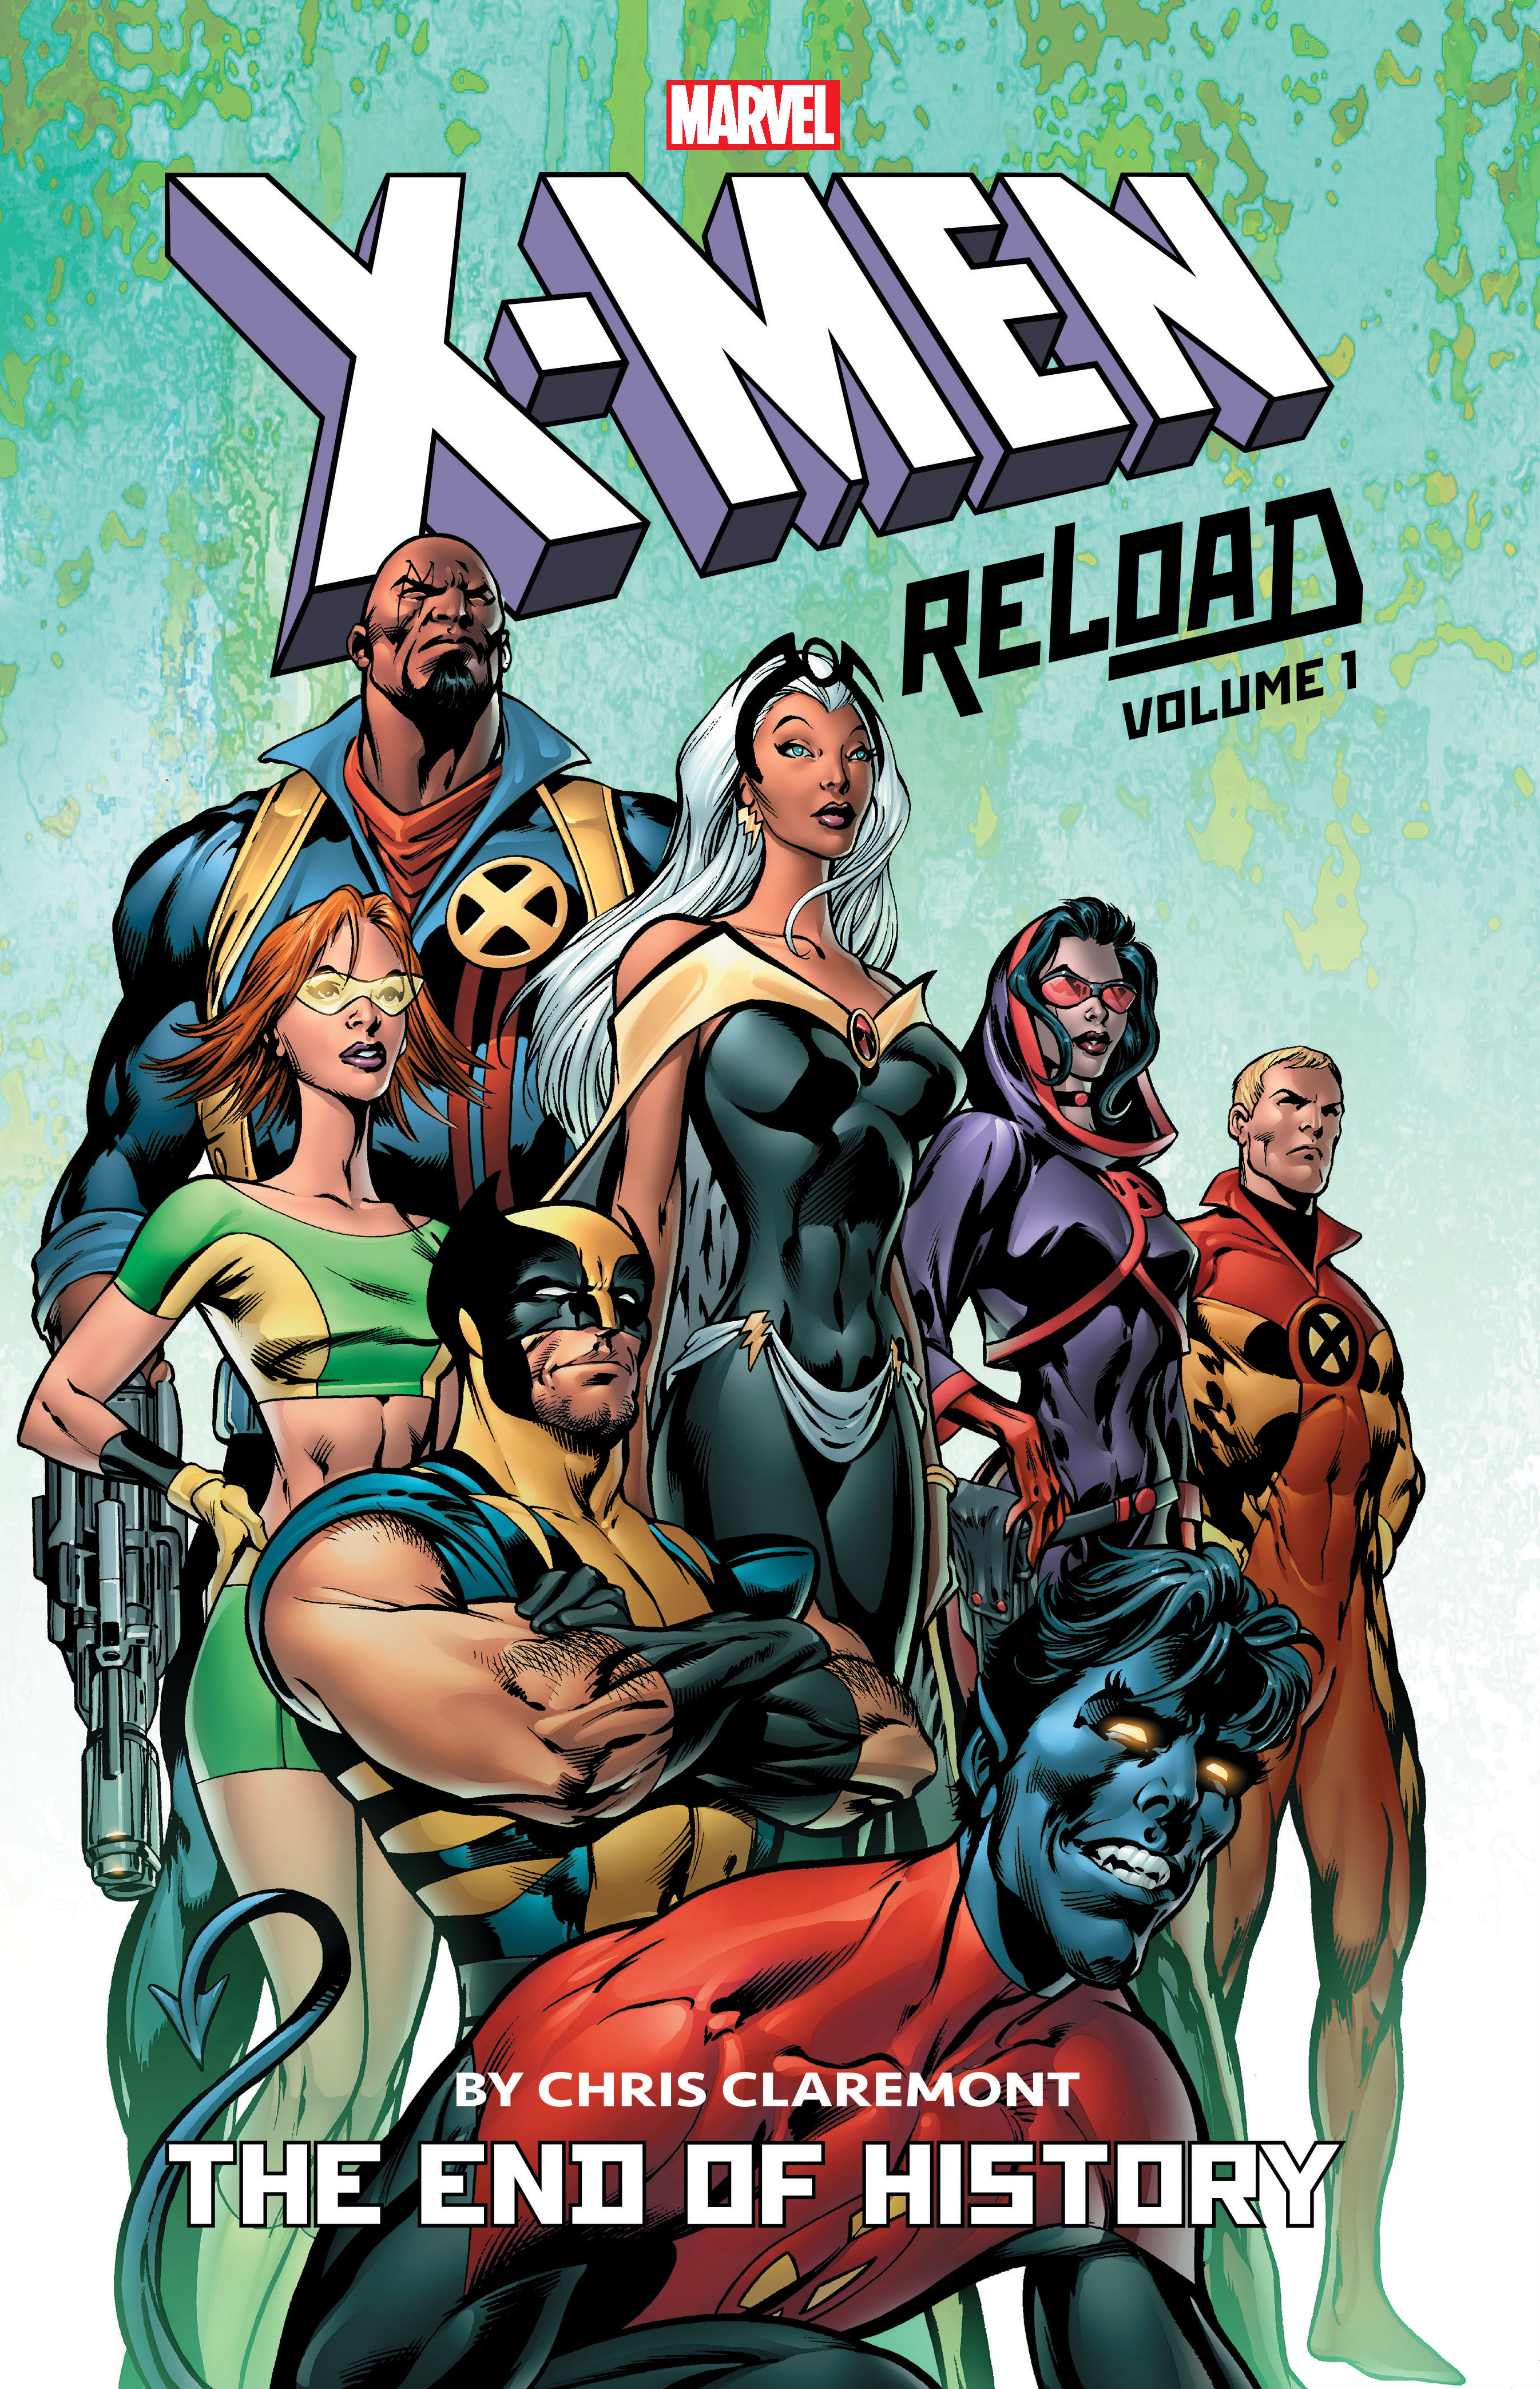 X-Men: Reload By Chris Claremont Vol. 1 - The End of History (Trade Paperback)